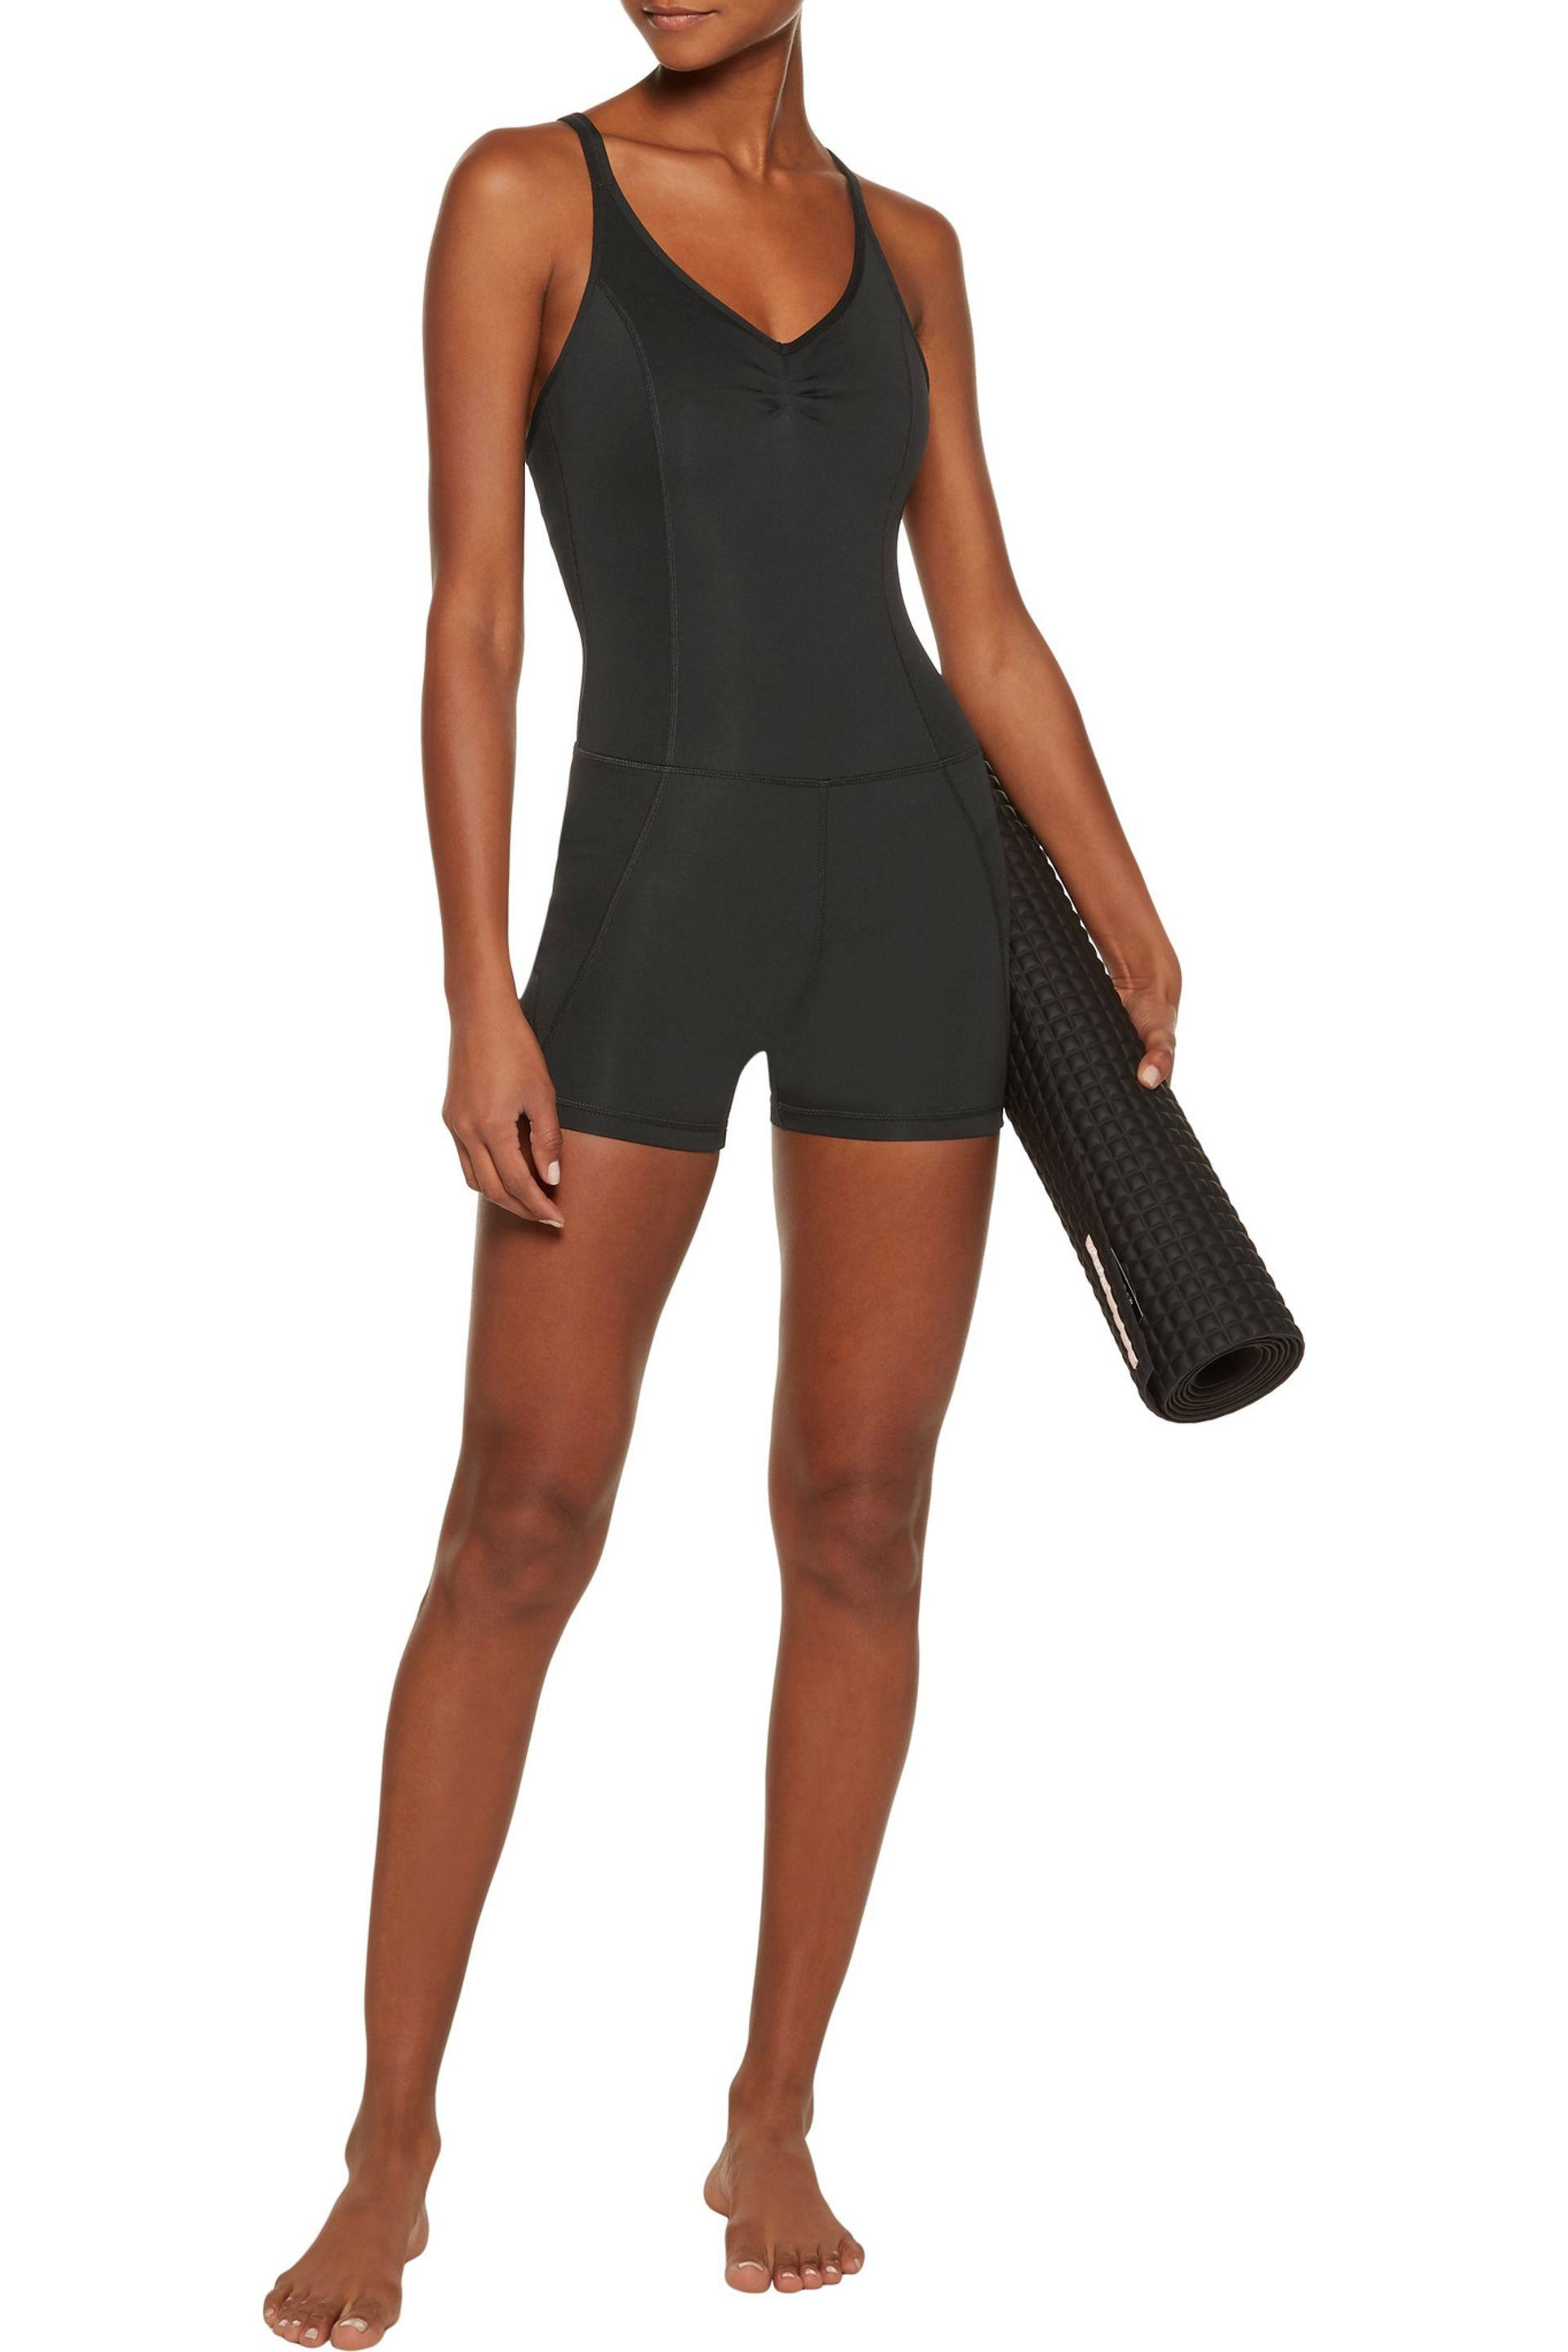 Purity Active   Black Cropped Mesh-paneled Stretch Unitard   Lyst. View  Fullscreen